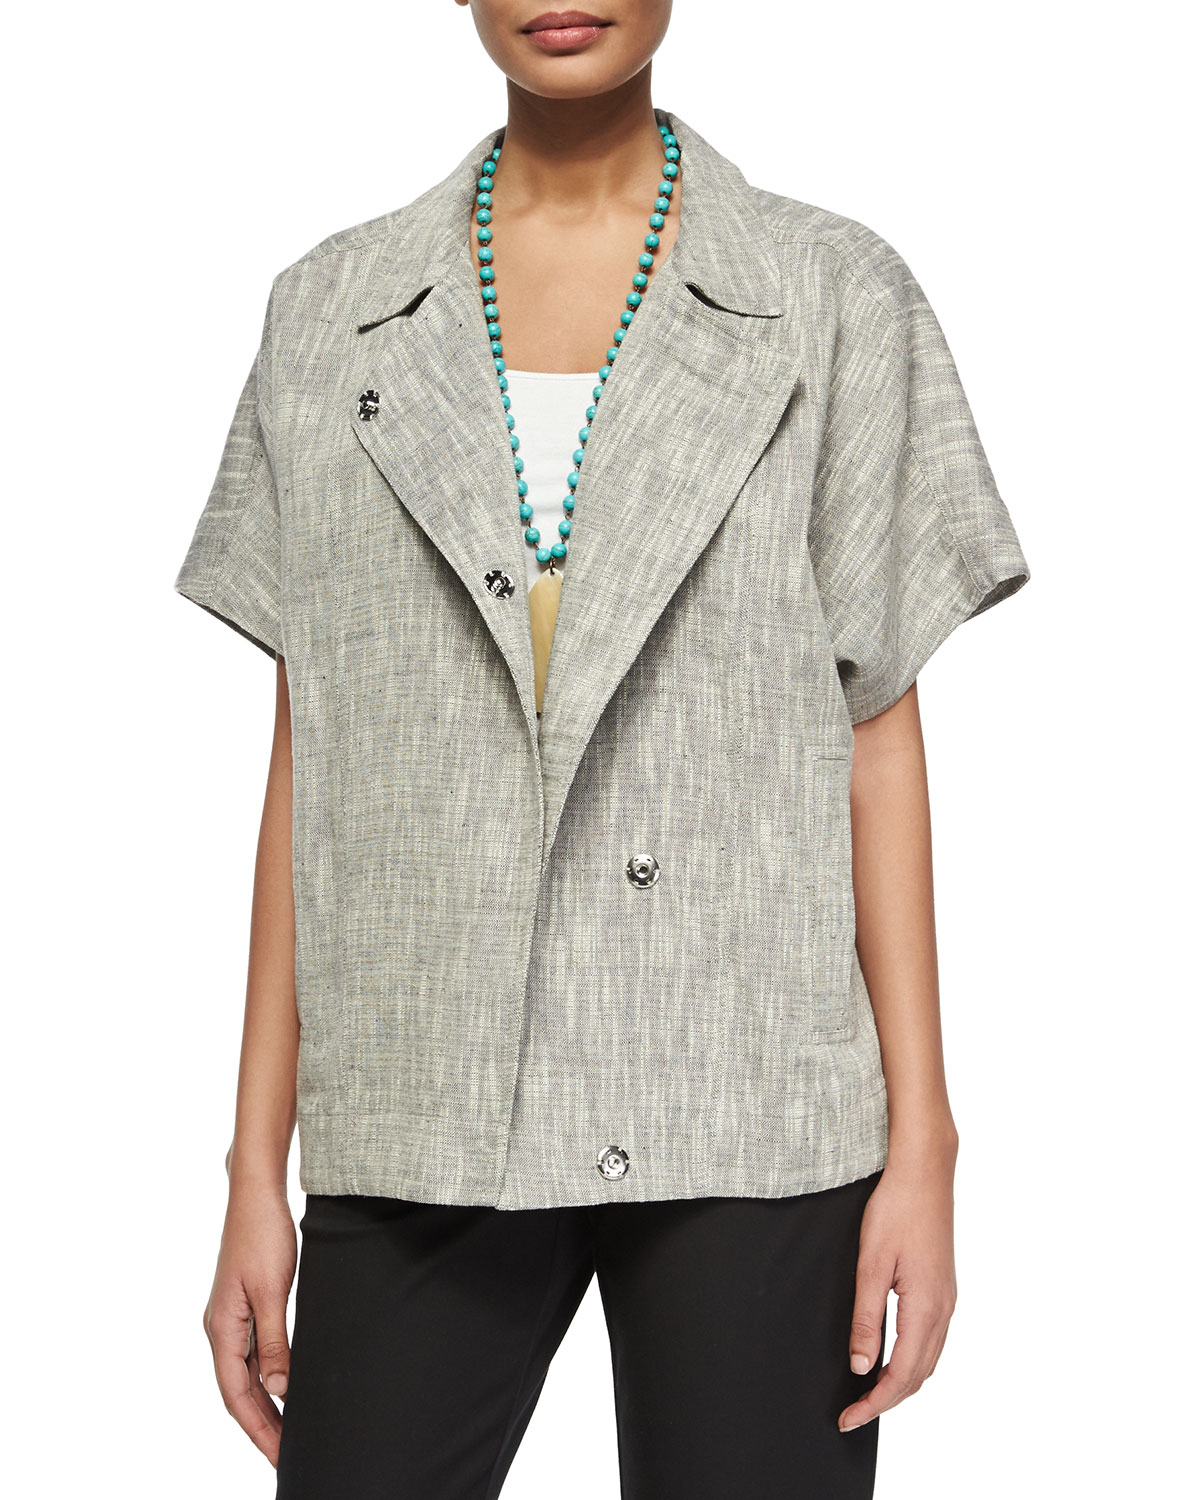 Eileen fisher Short-Sleeve Boxy Jacket in Gray | Lyst